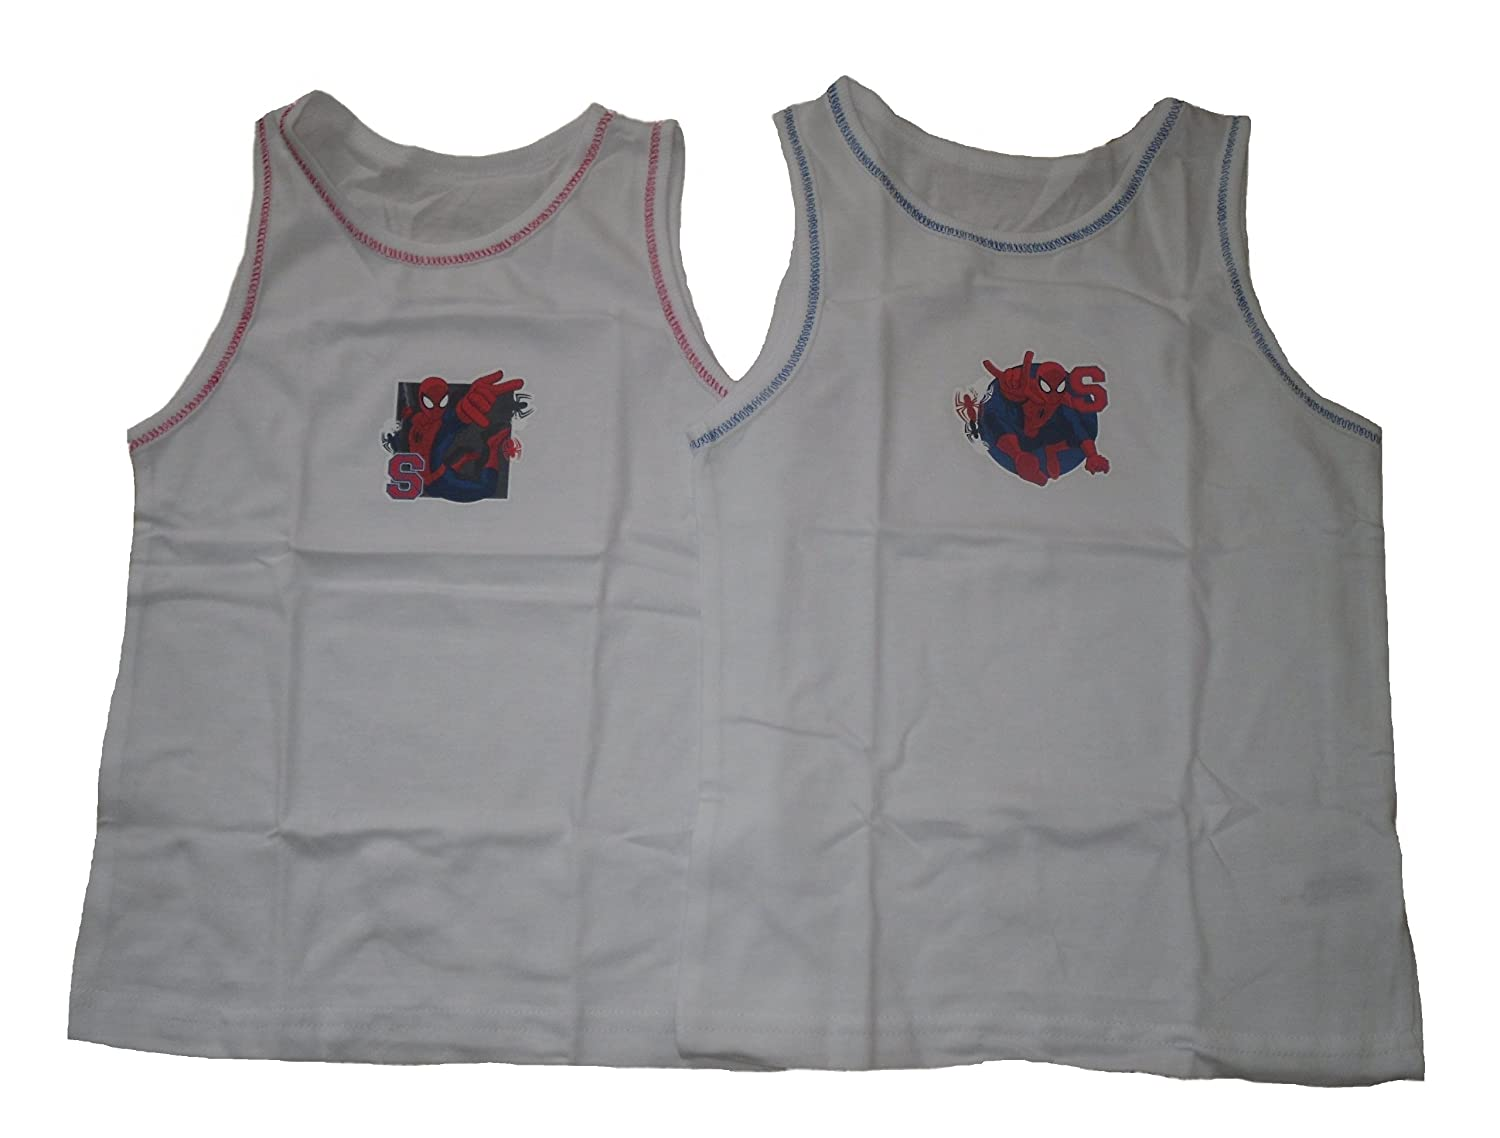 BOYS 2 PACK VEST TOPS SPIDERMAN